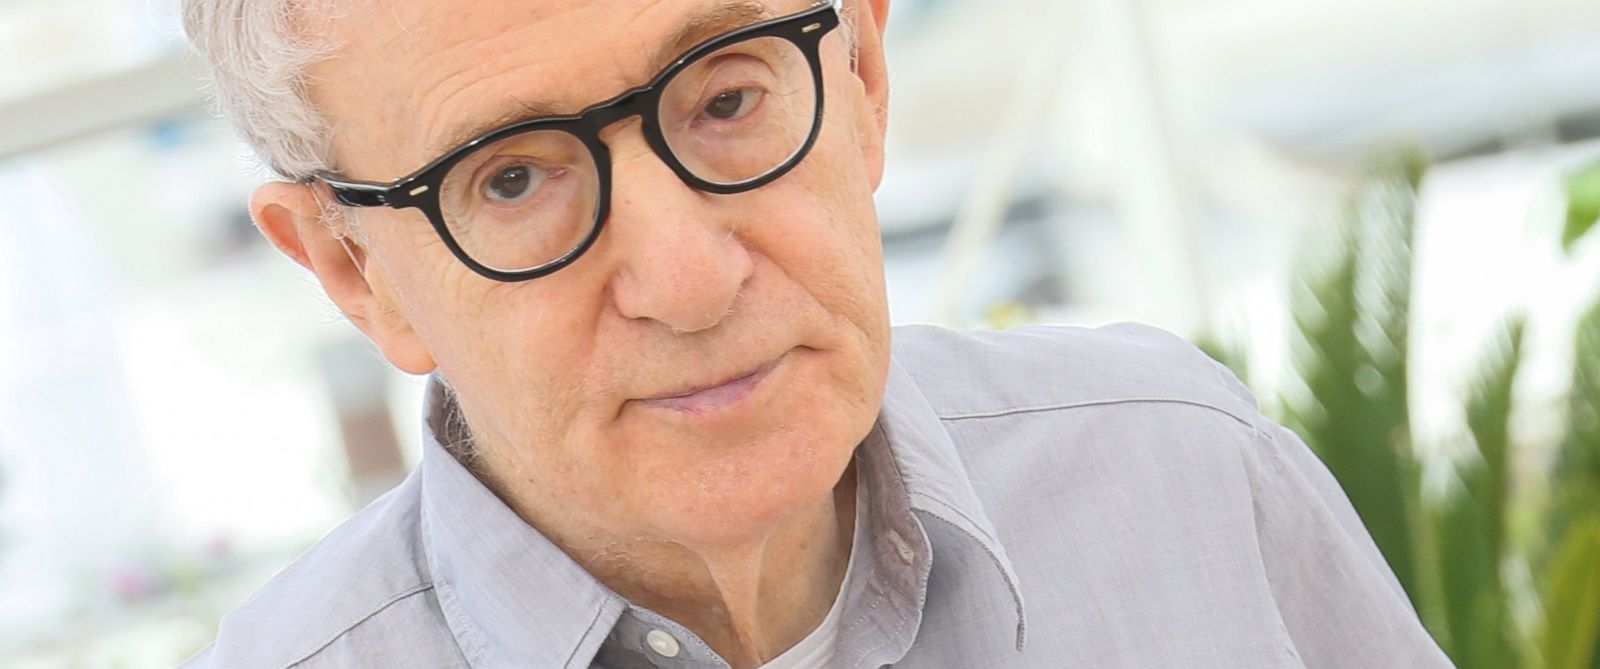 woody allen responds to ronan farrow essay abc news woody allen responds to ronan farrow essay